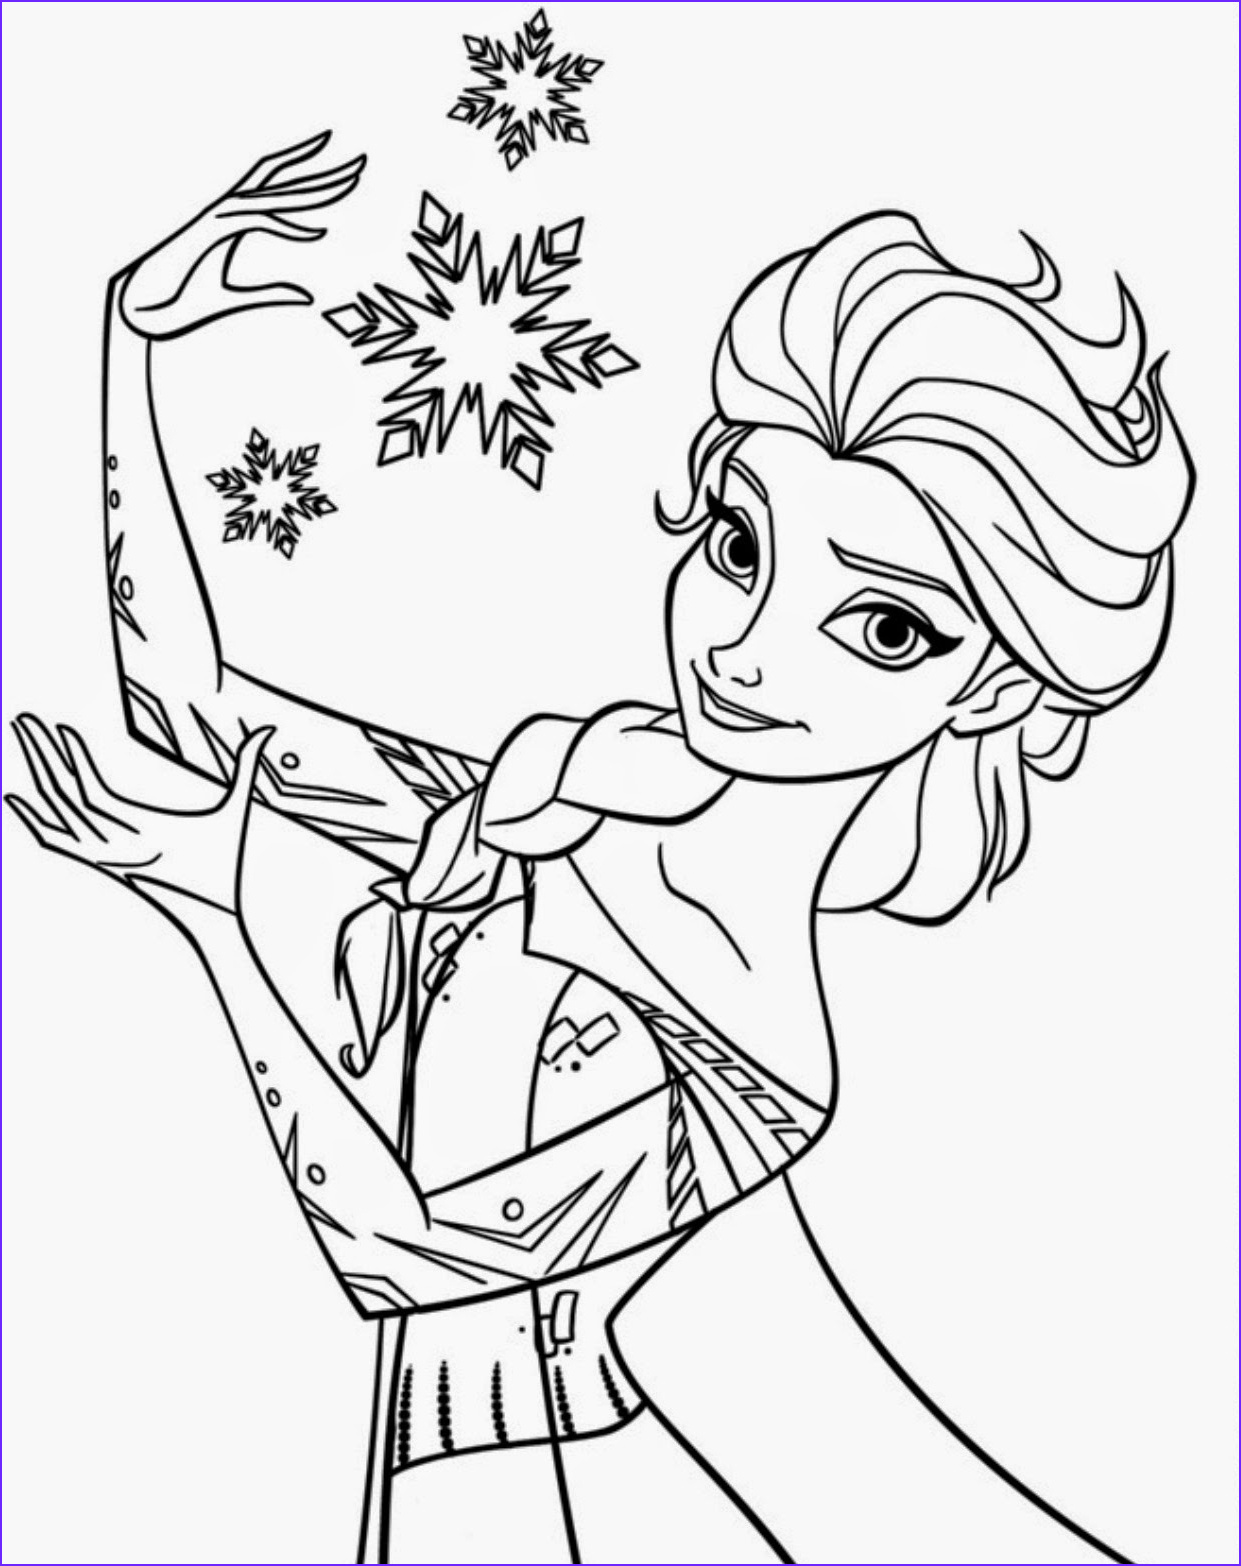 Disney Frozen Coloring Pages Inspirational Images 15 Beautiful Disney Frozen Coloring Pages Free Instant